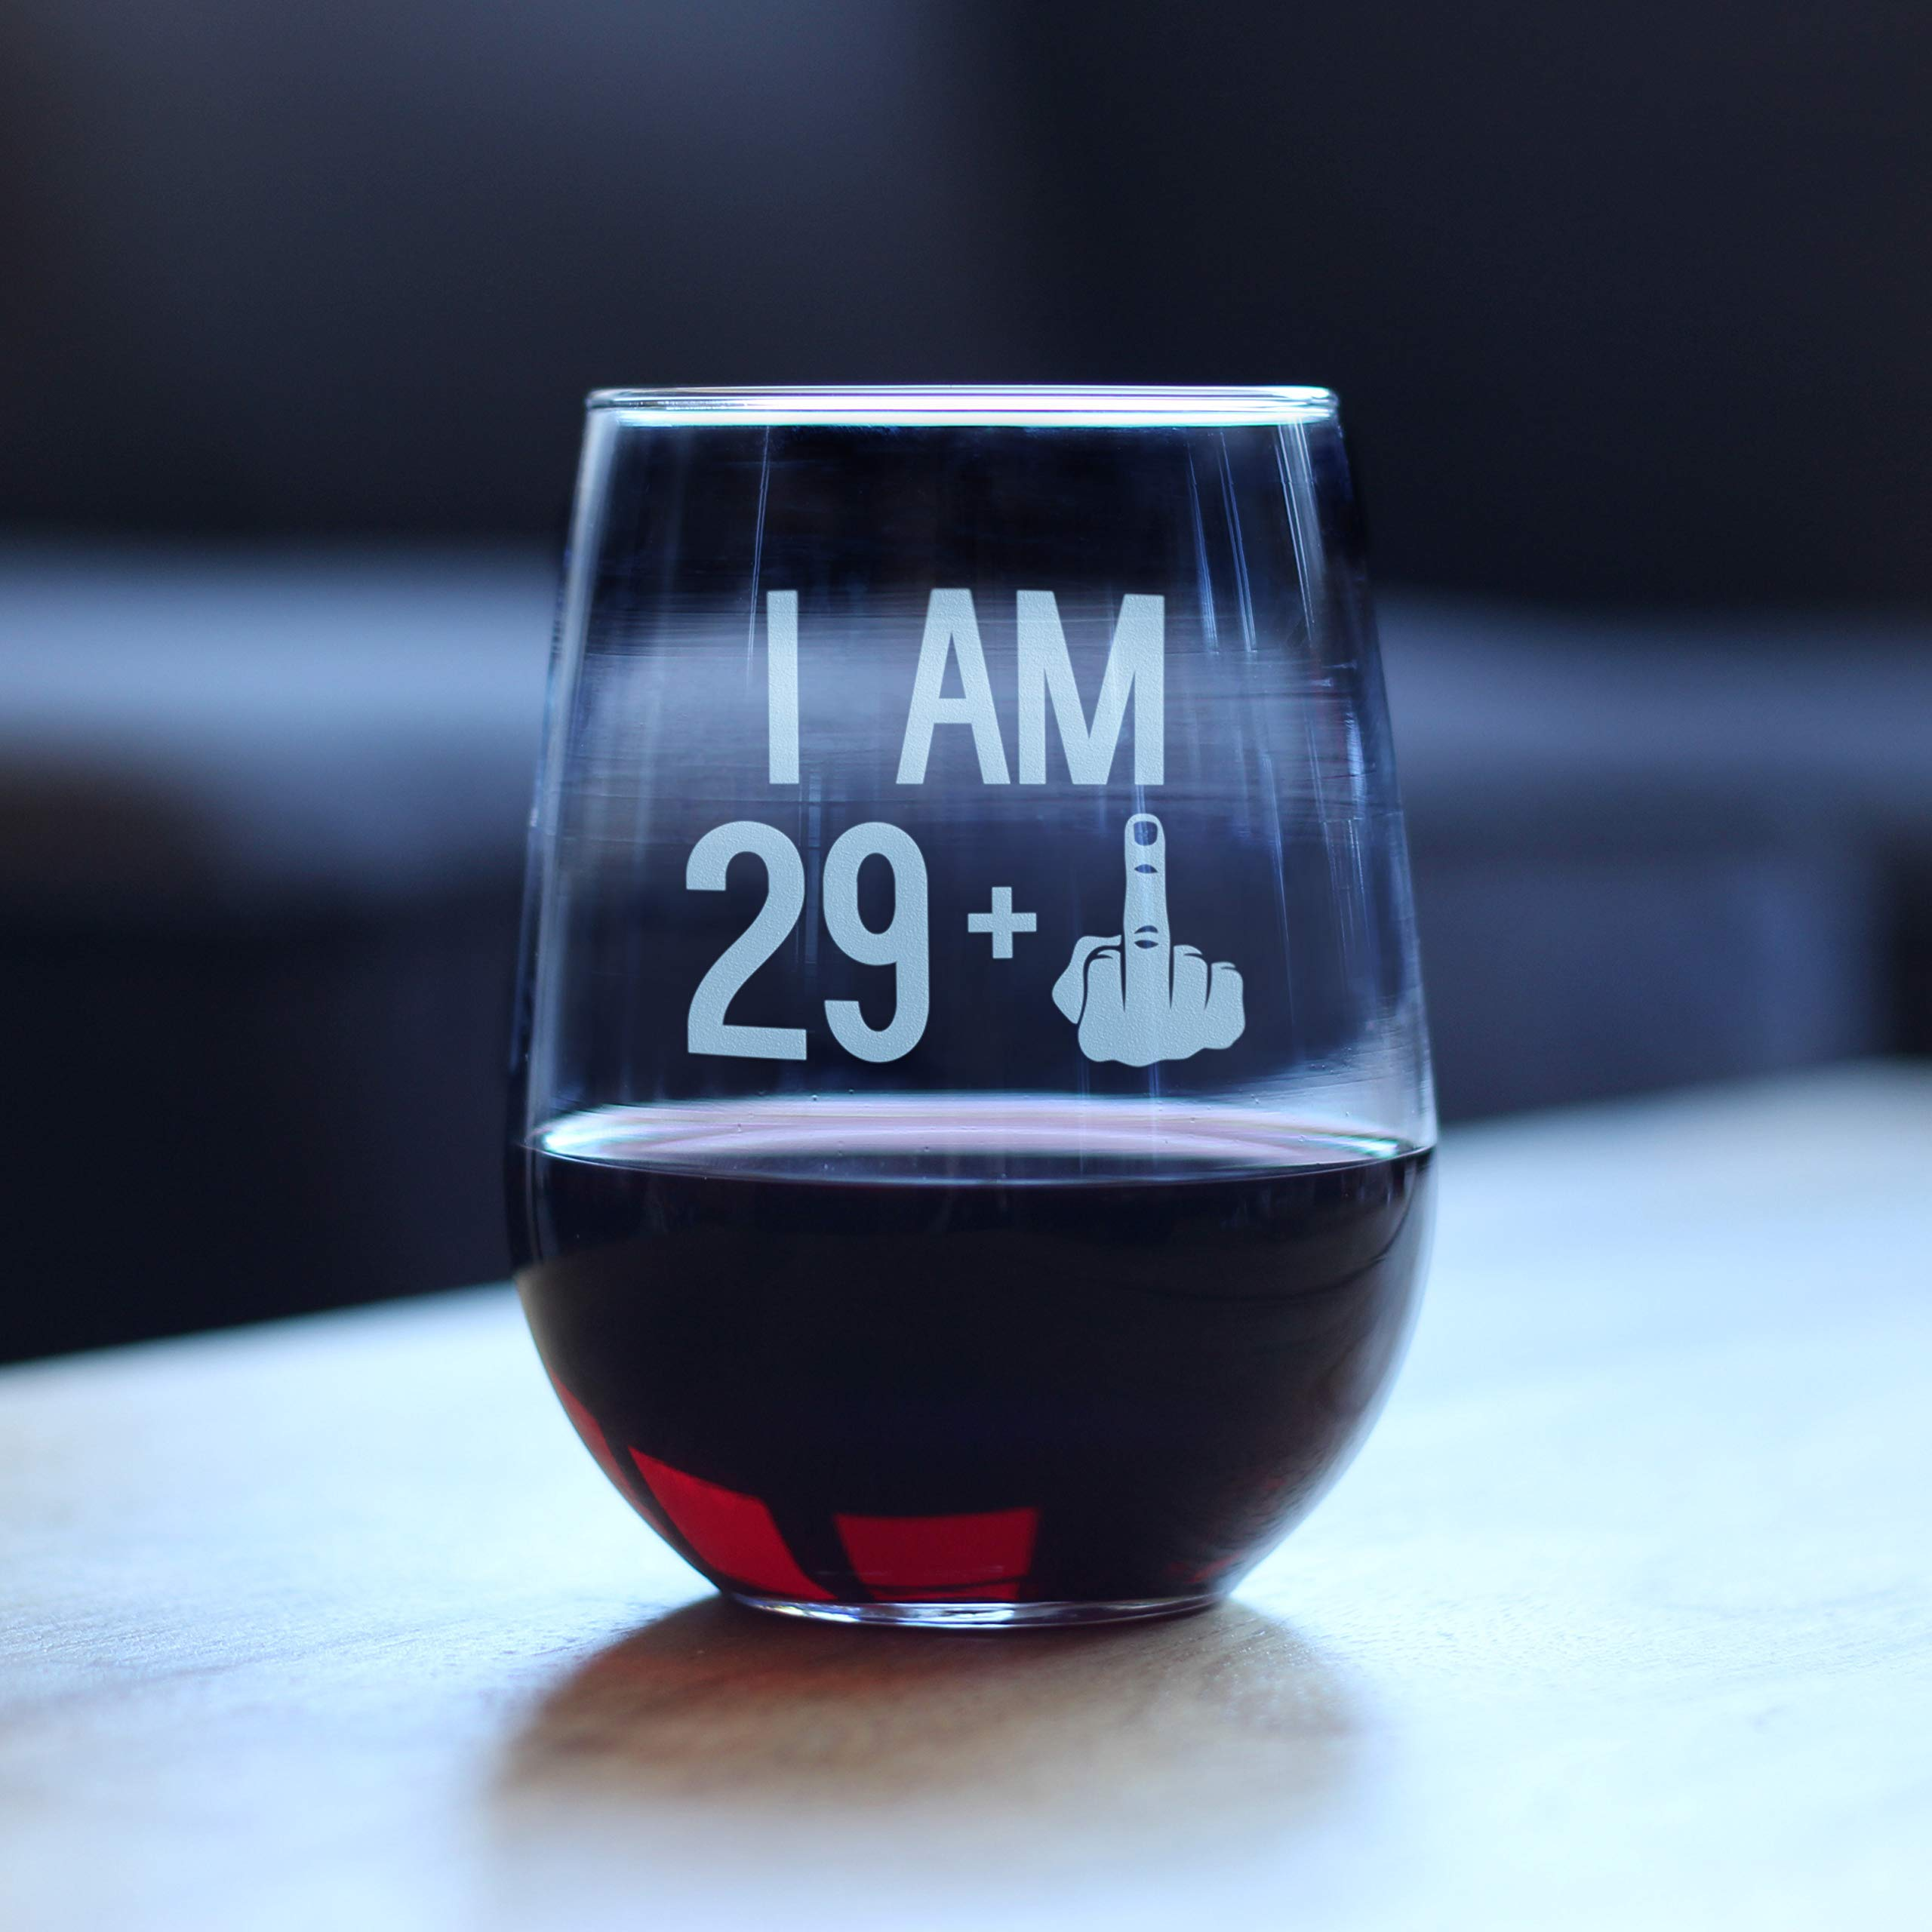 29 + One Middle Finger | 30th Birthday Stemless Wine Glass for Women & Men | Cute Funny Wine Gift Idea | Unique Personalized Bday Glasses for Best Friend Turning 30 | Drinking Party Decoration by Bevvee (Image #2)